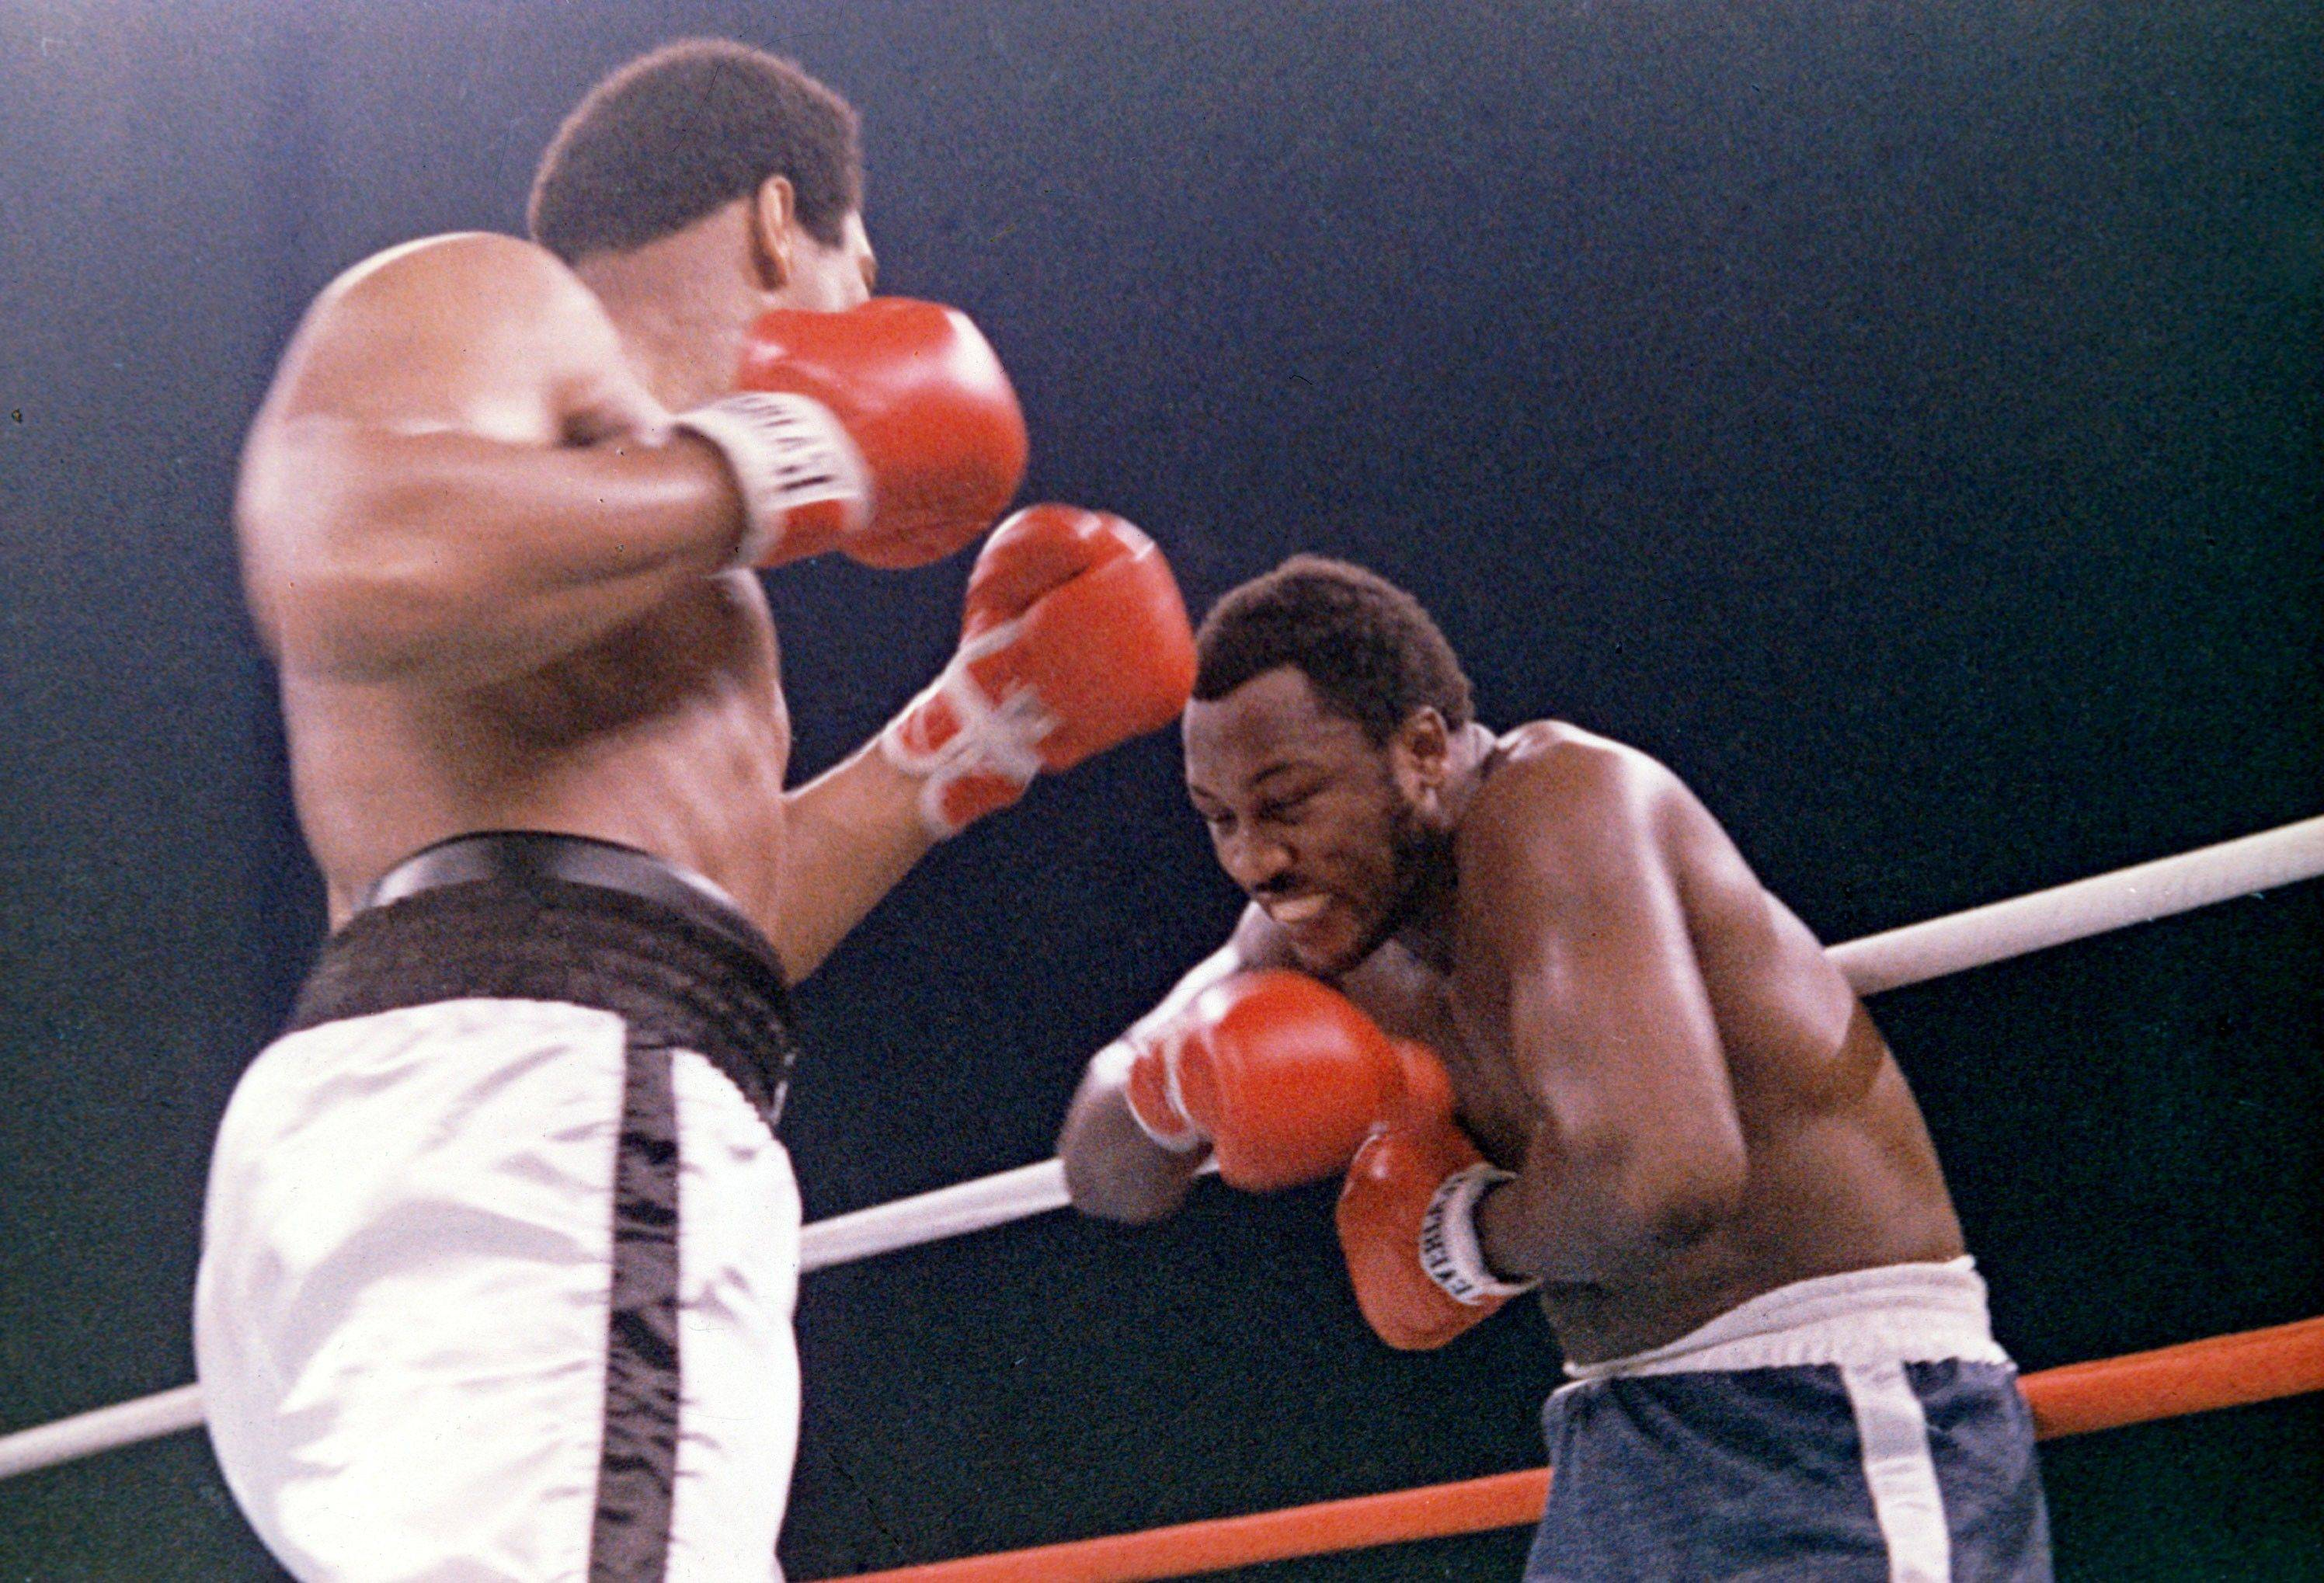 In this Oct. 1, 1975, file photo, heavyweight boxer Joe Frazier grimaces after Muhammad Ali, left, landed a blow to Frazier's head during their boxing bout in Manila, the Philippines. Ali won the fight after Frazier's manager stopped the fight in the 14th round. Frazier, the former heavyweight champion who handed Ali his first defeat yet had to live forever in his shadow, has died after a brief final fight with liver cancer. He was 67. The family issued a release confirming the boxer's death on Monday night, Nov. 7, 2011.